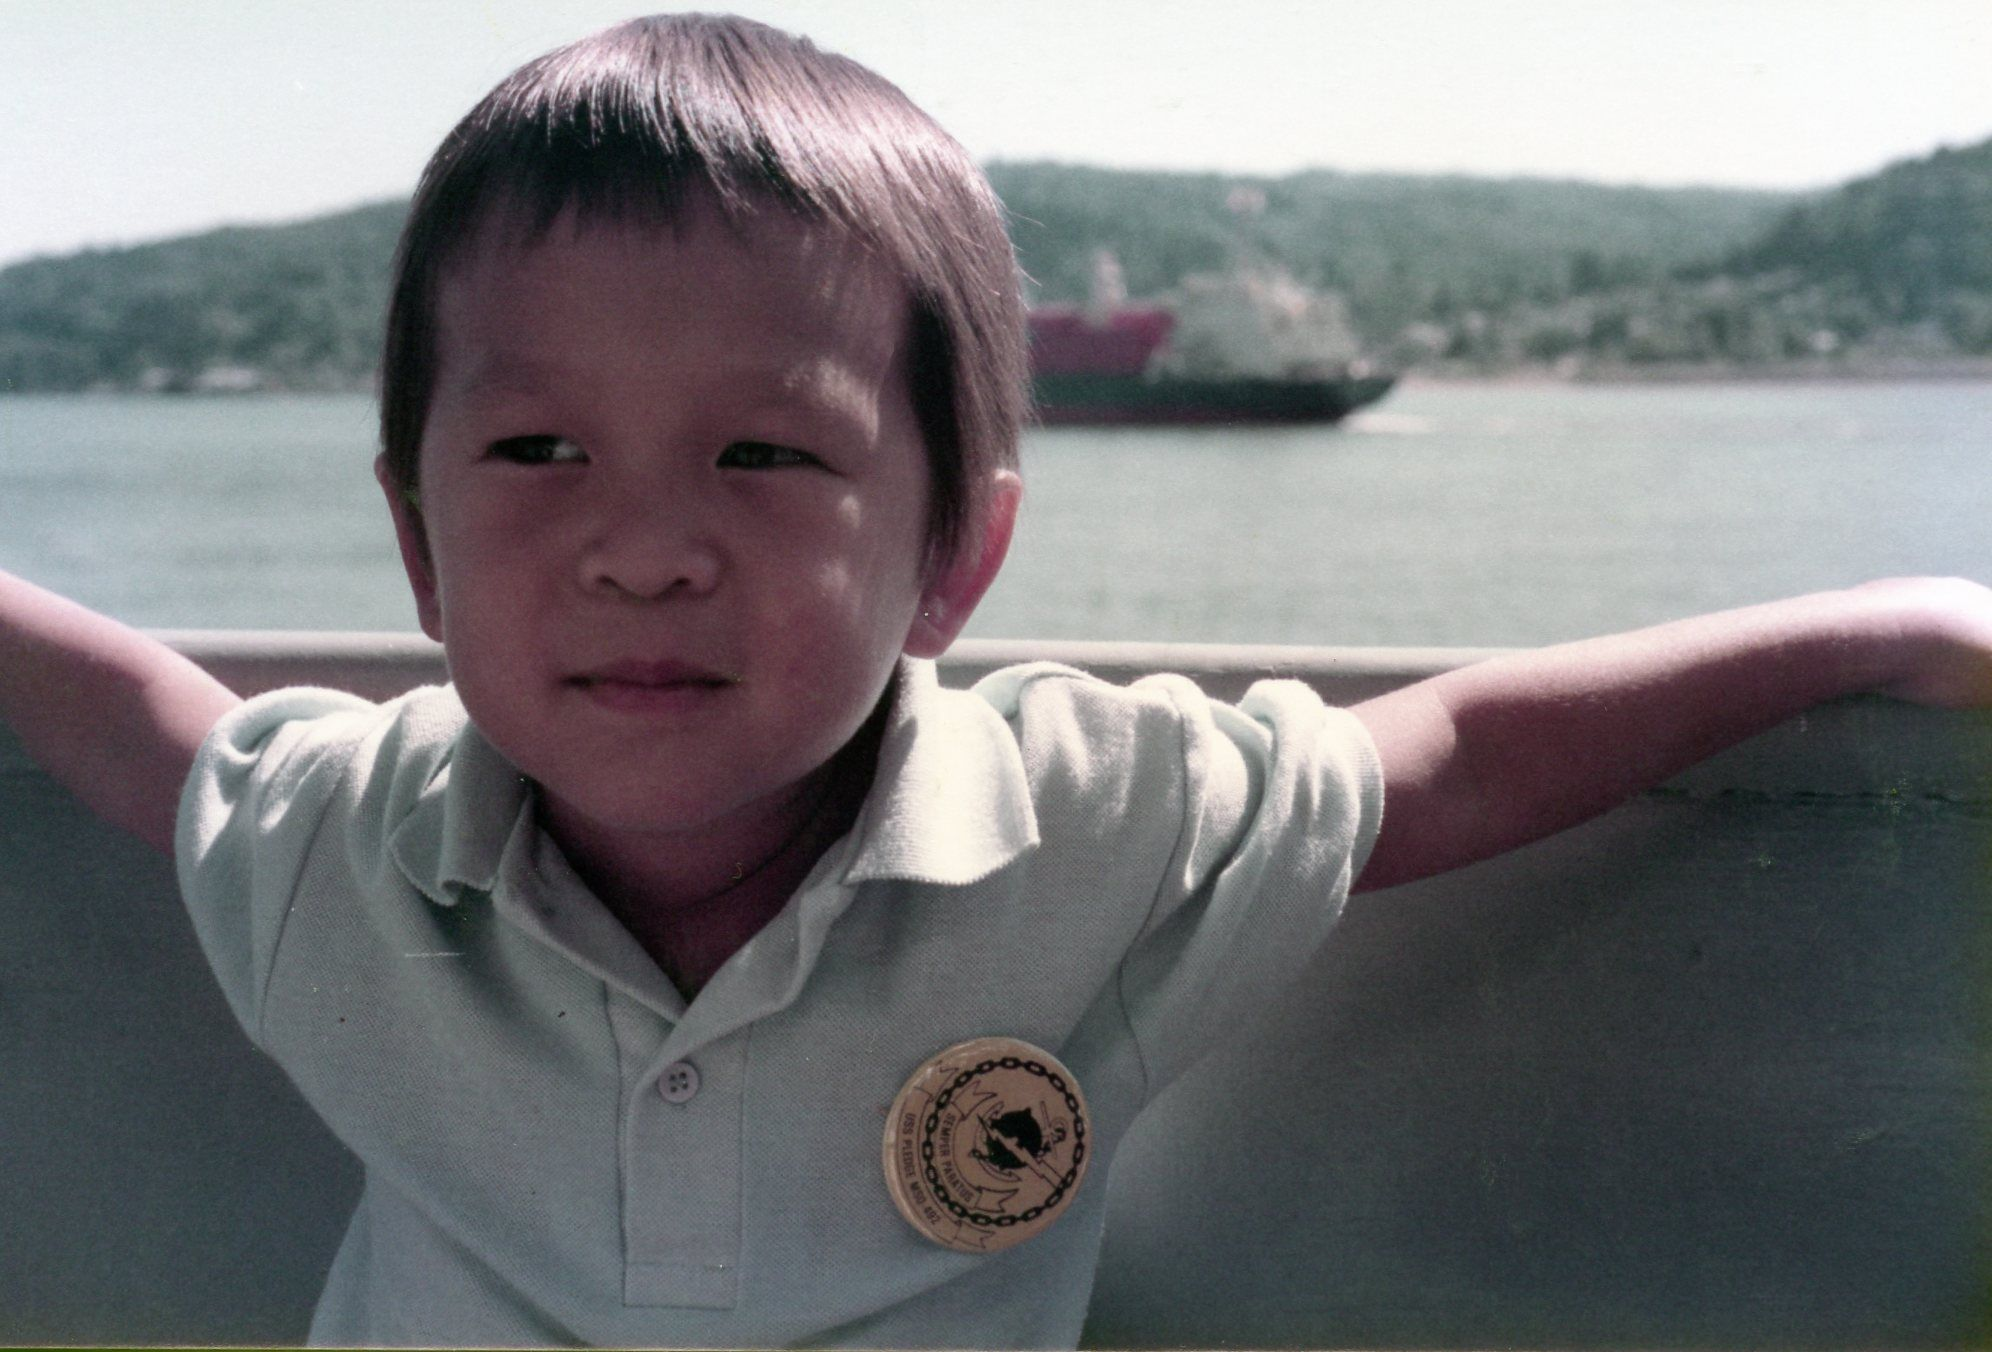 Image of Daniel Hoang as a small child sitting in a boat. In the background is a large body of water and a freight ship.